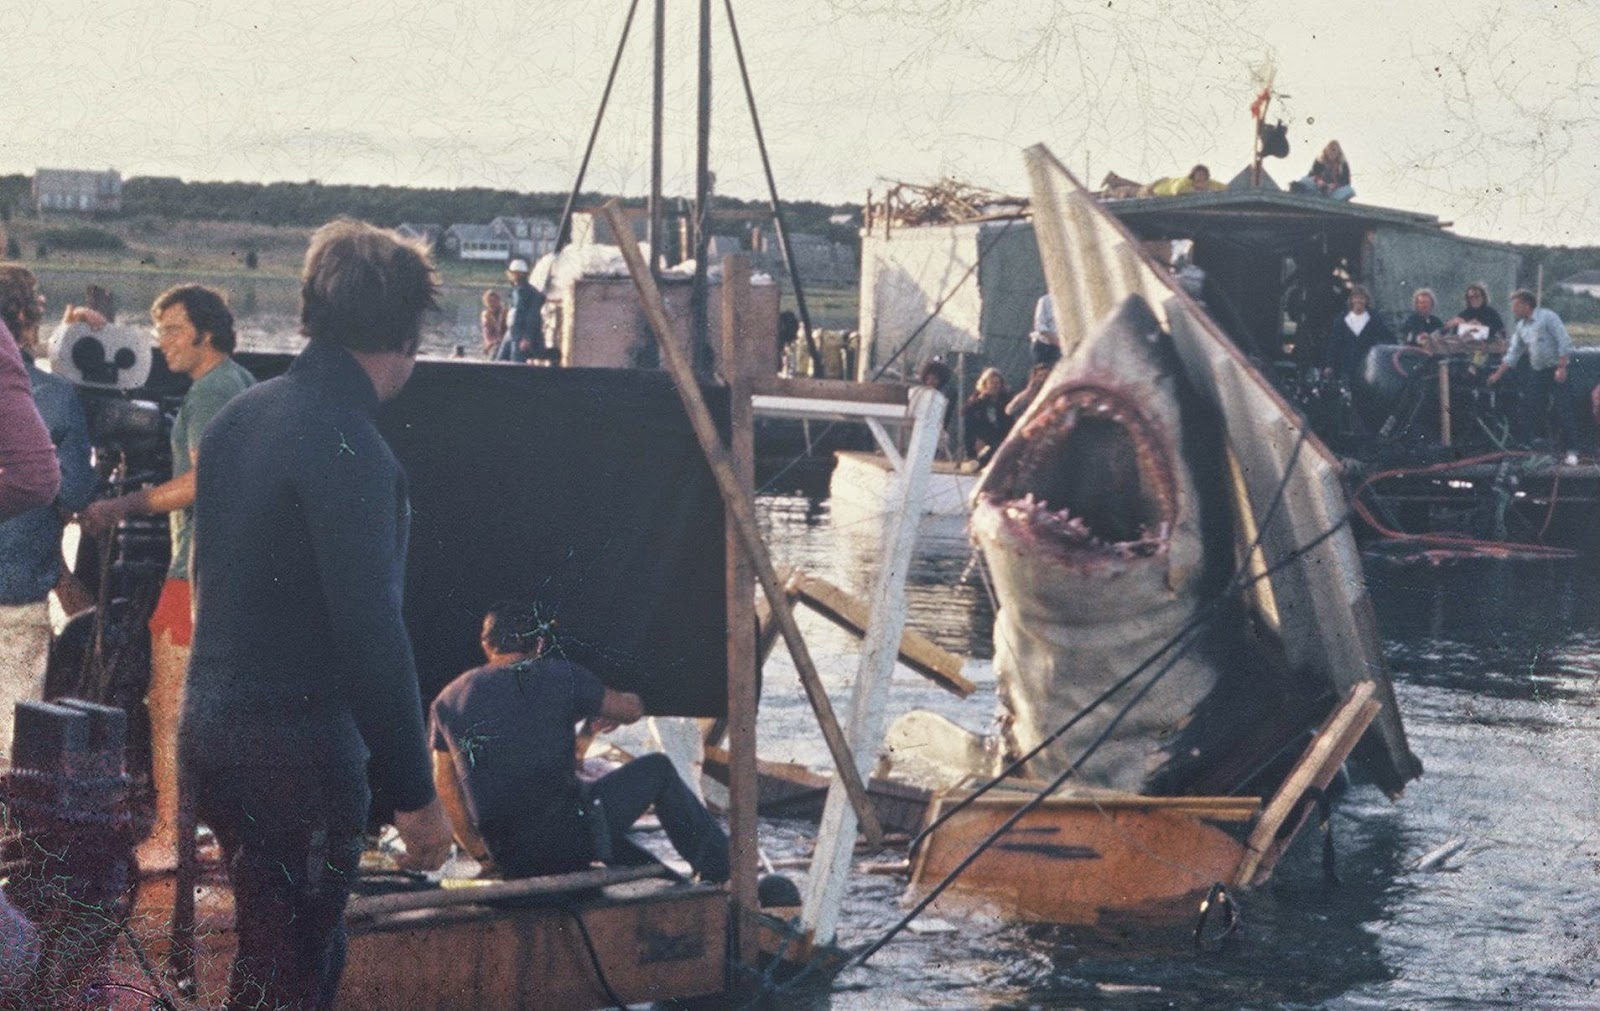 kmhlchgolpv 27 Things You Didn't Know About Jaws